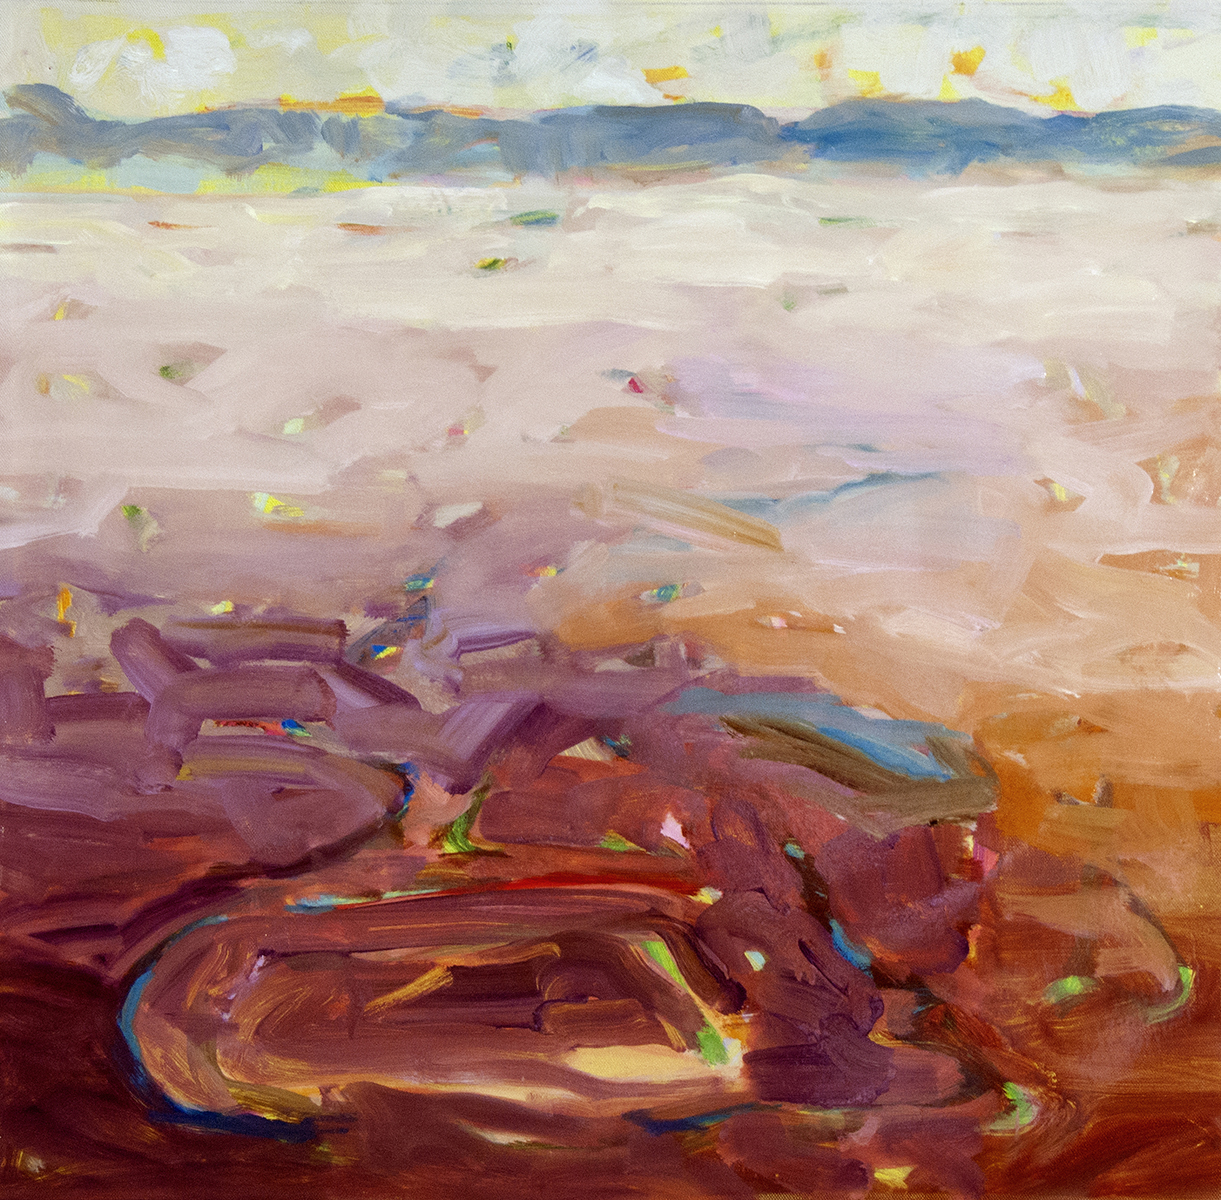 MountainLake04Oilcanvas24x24MelSmothers2016, low res.jpg